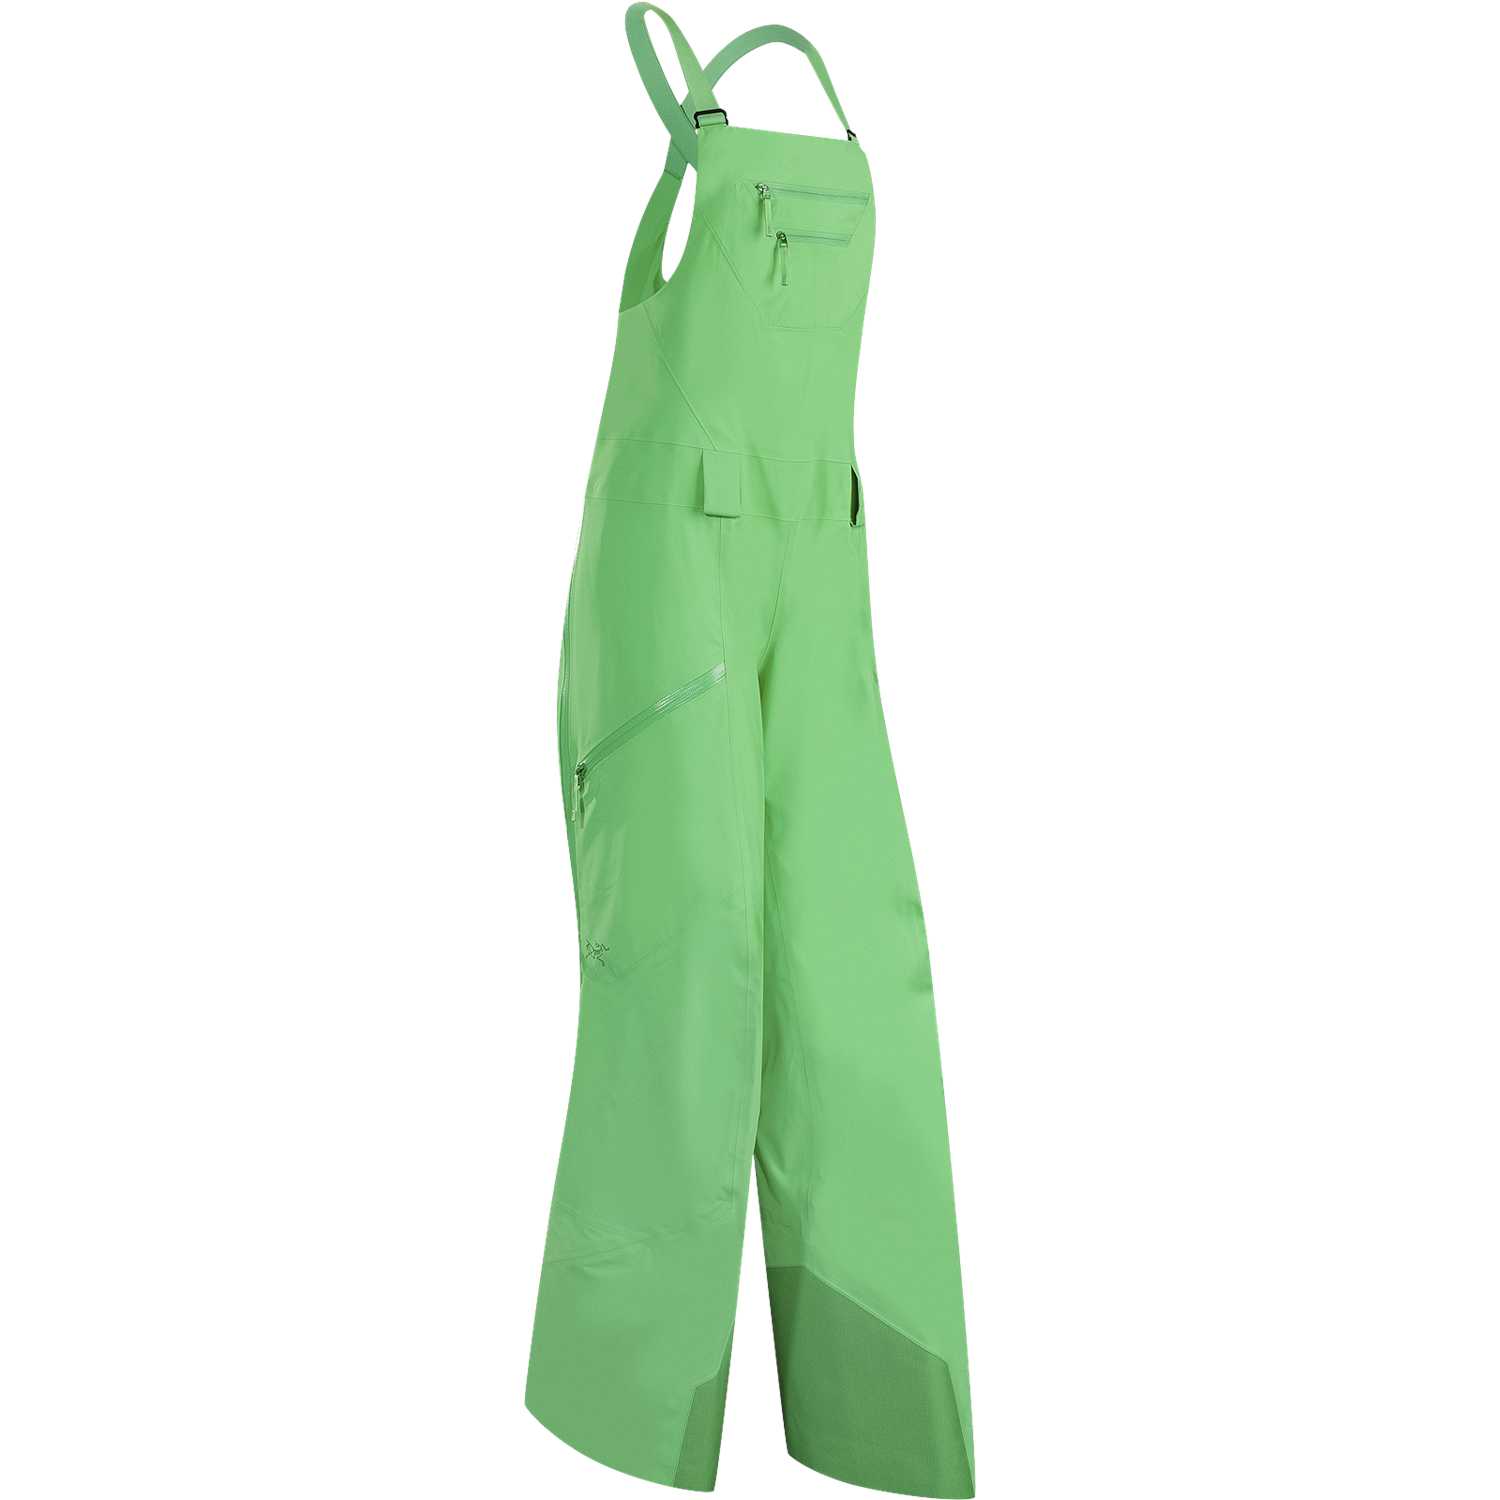 Lime Green Pants Women